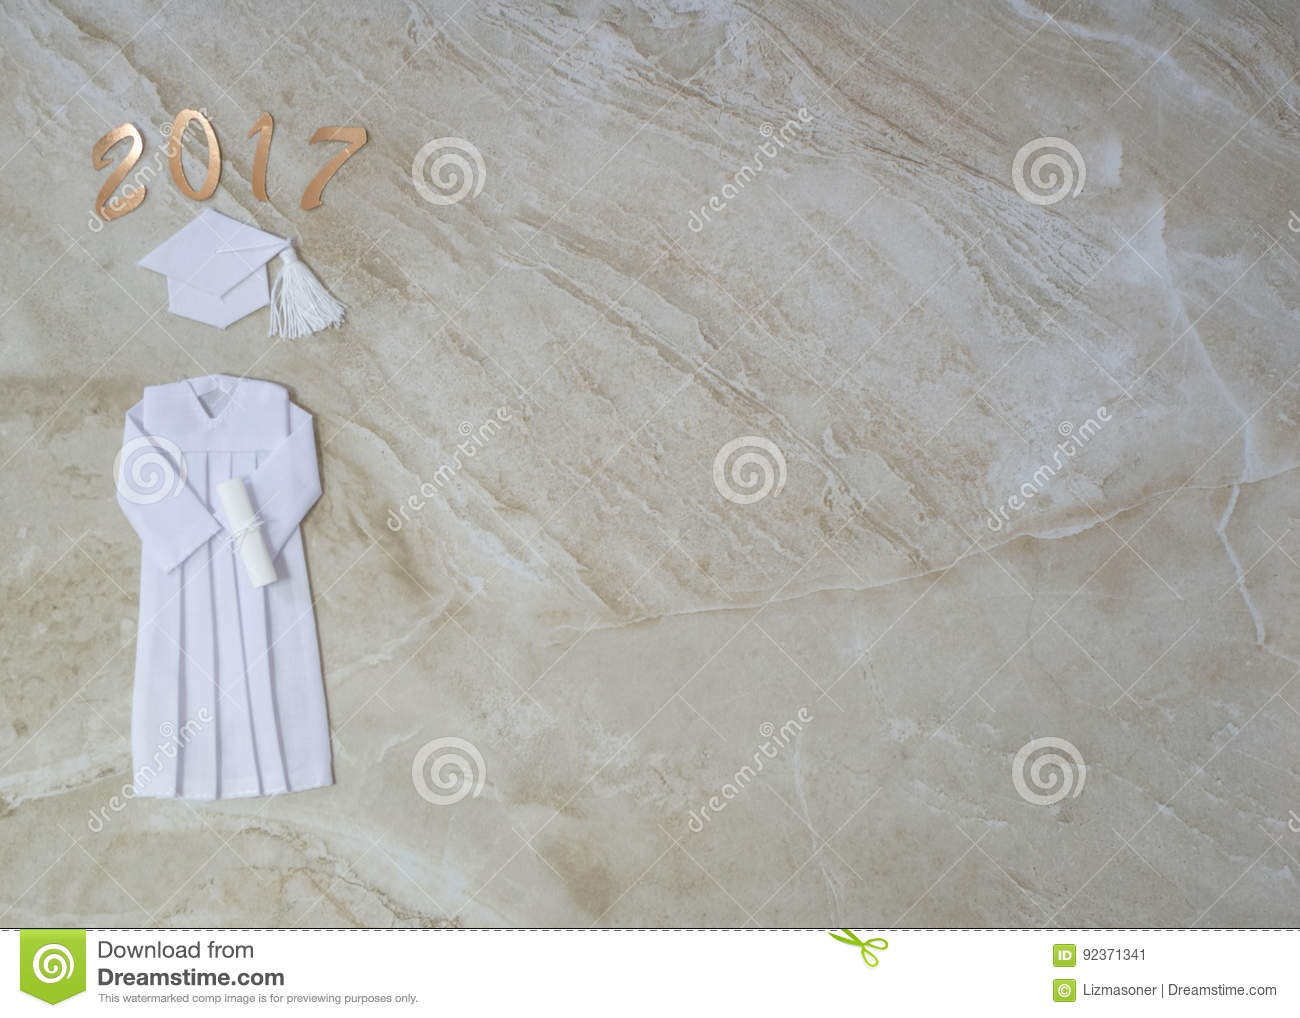 2017 Graduation Cap And Gown Stock Image - Image of white, year ...